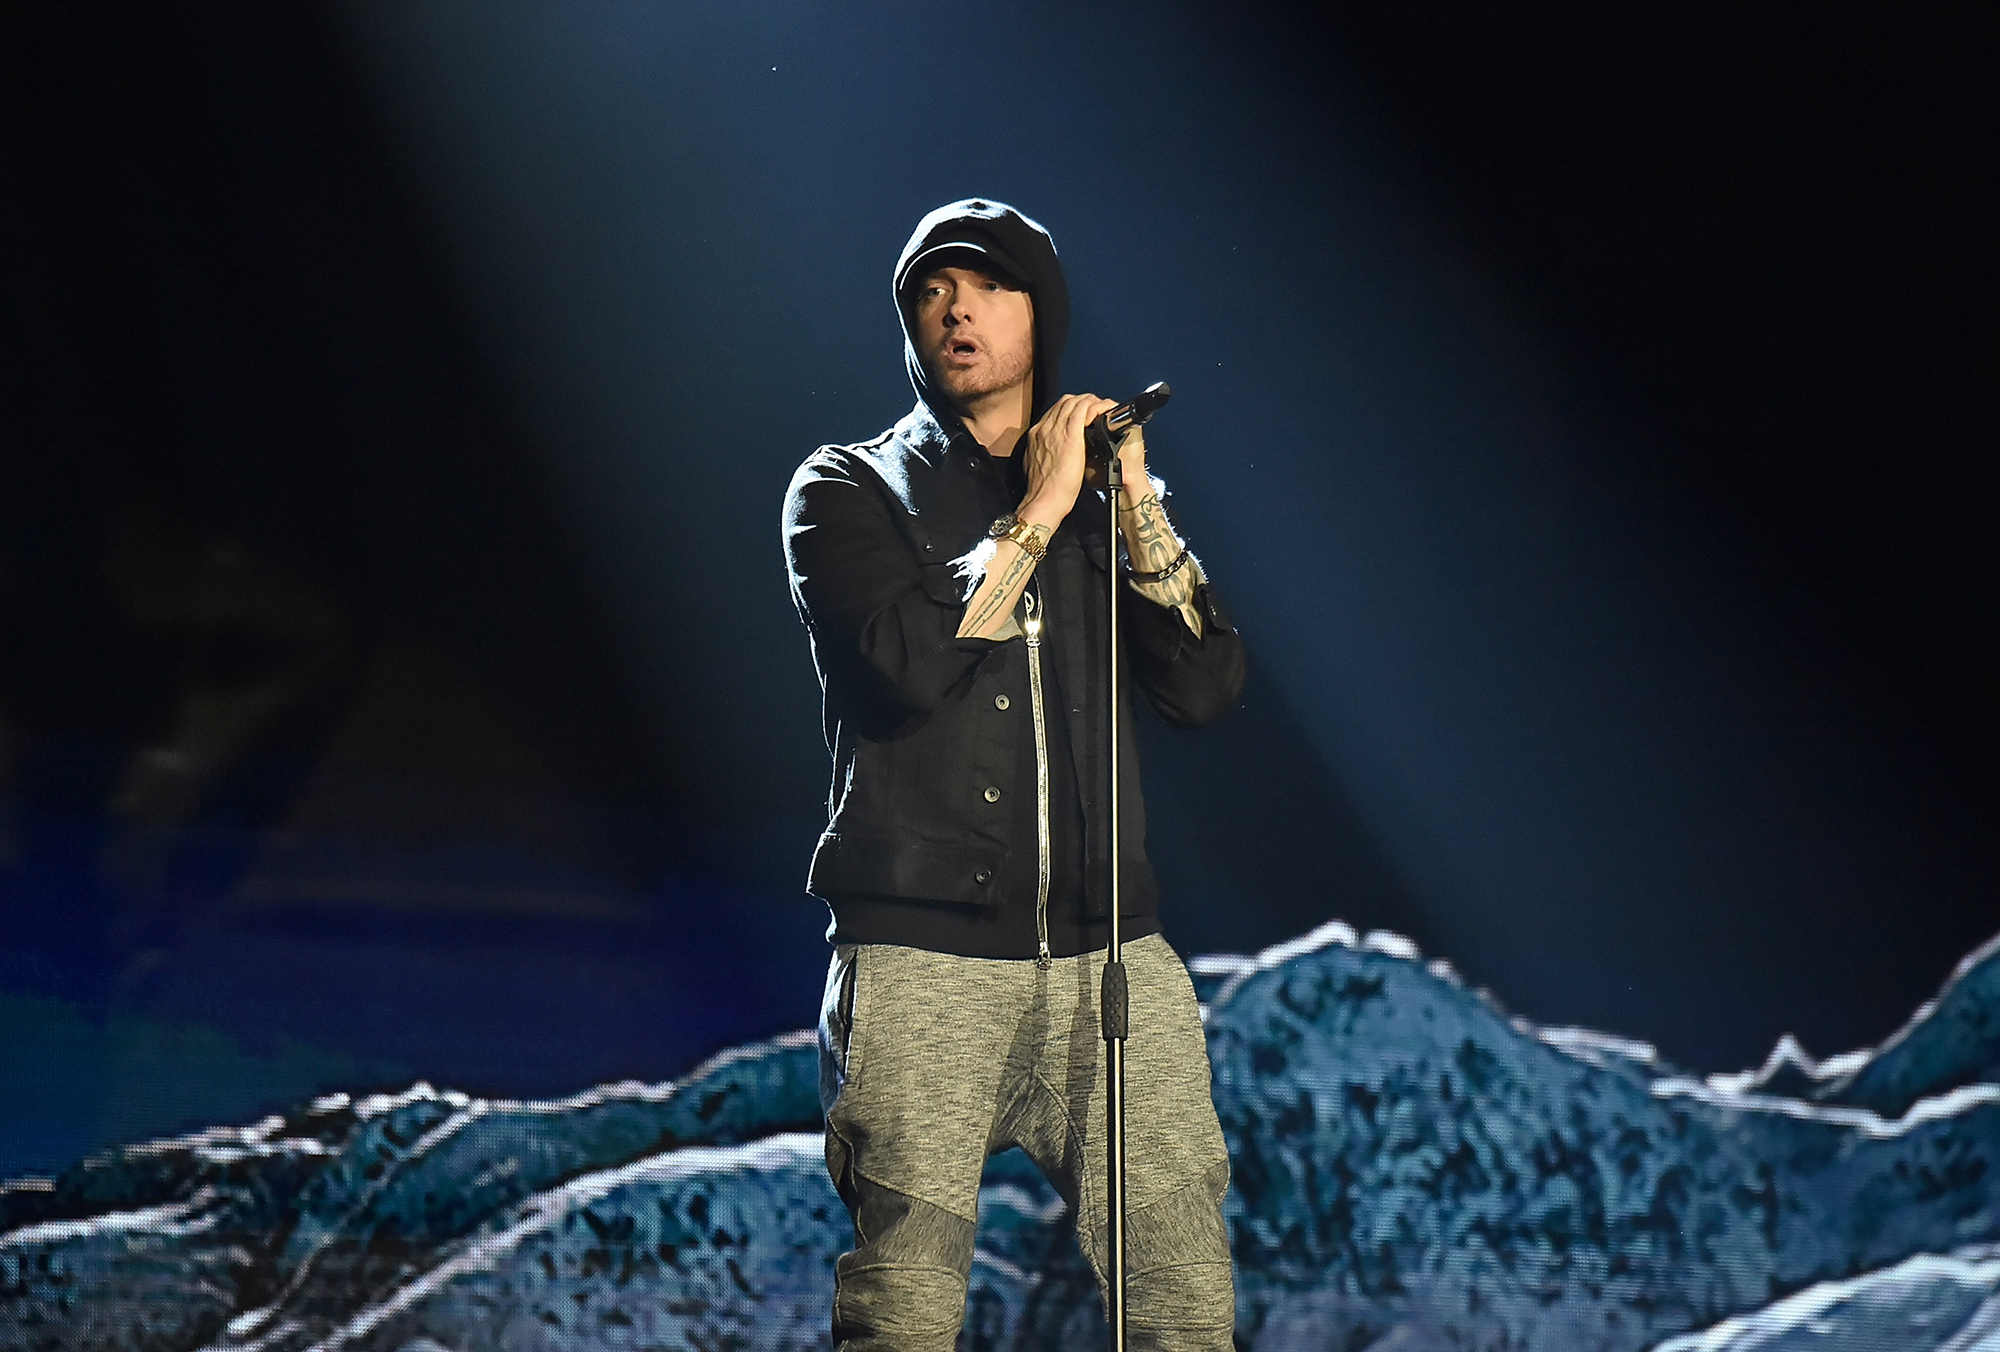 eminem-performs-venom-on-top-of-empire-state-building.jpg